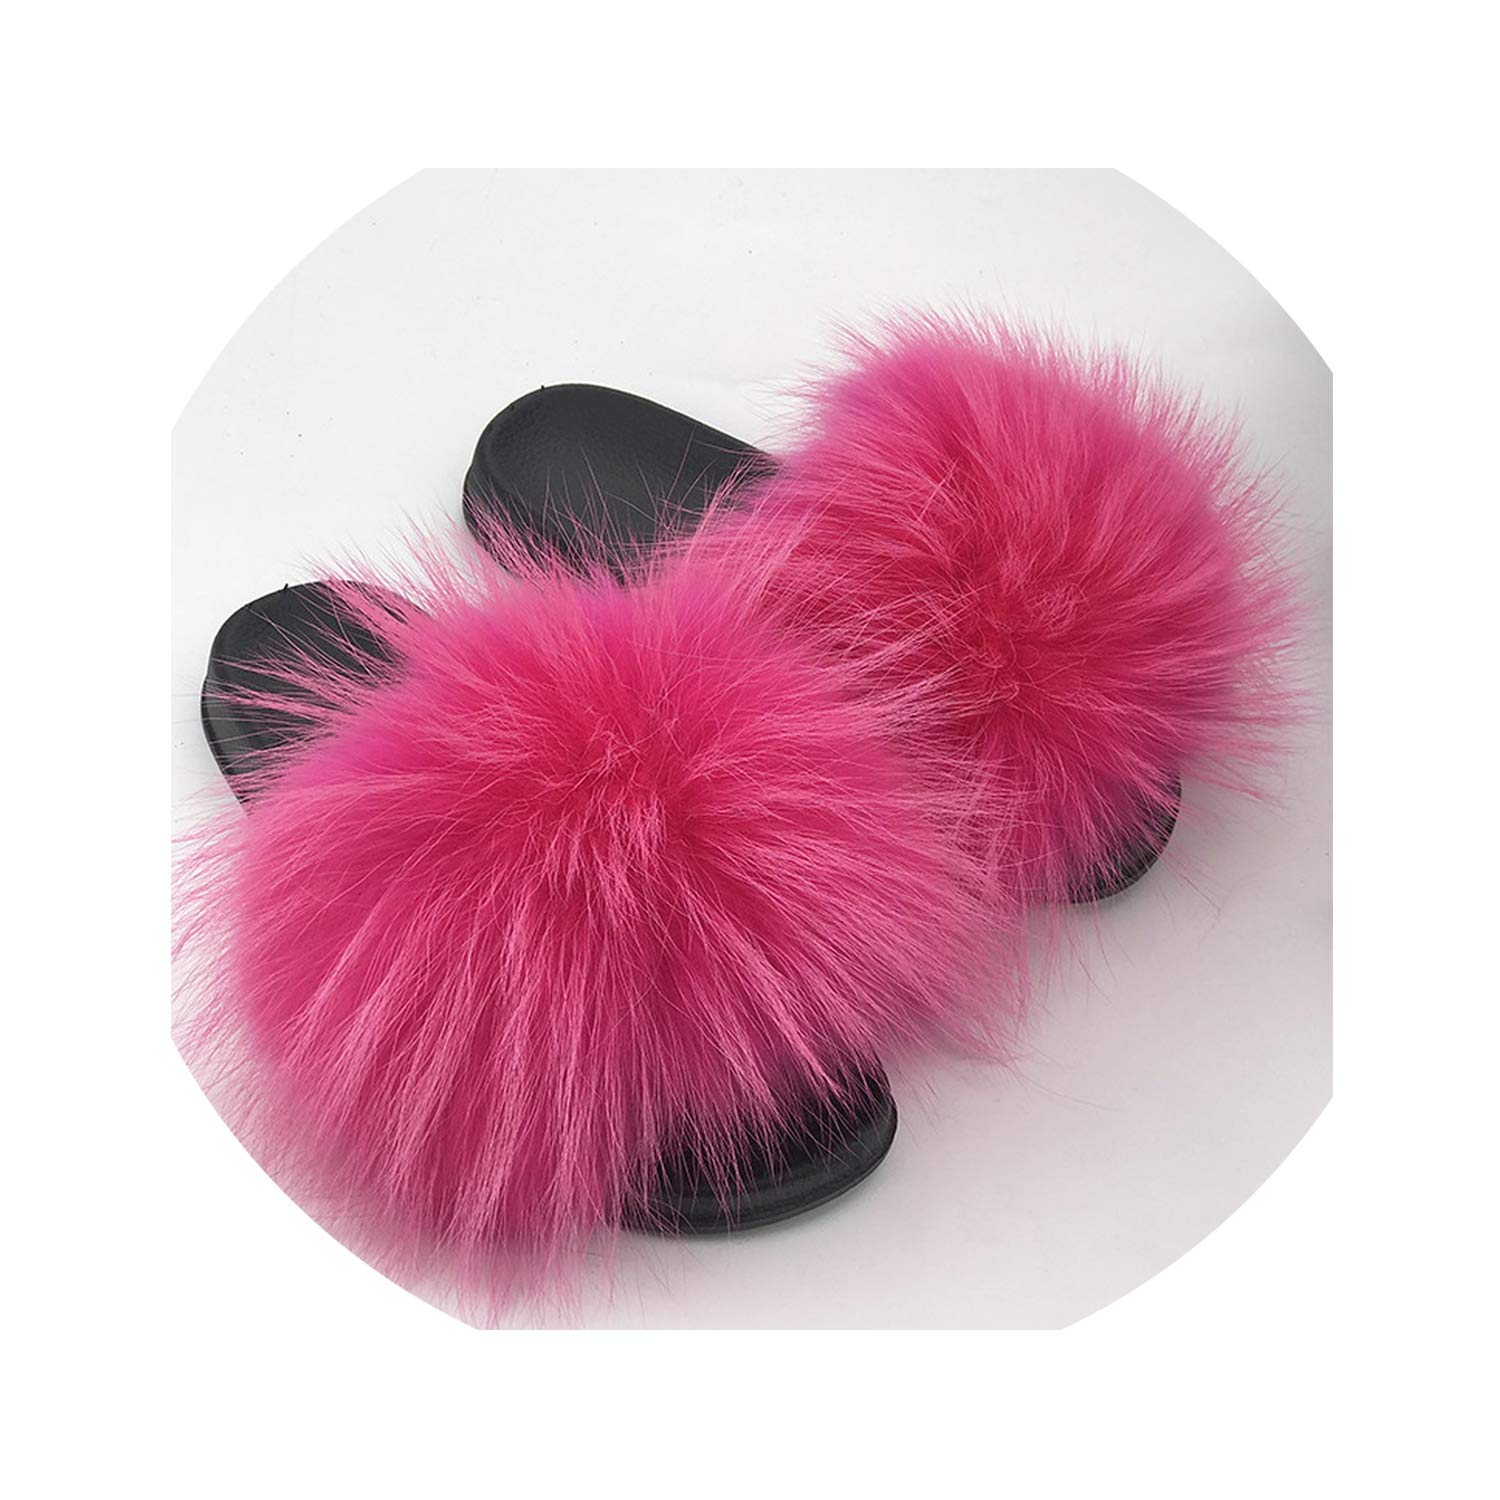 28 Colors Real Fur Slippers Women Fox Fluffy Sliders Comfort with Feathers Furry Summer Flats Sweet Ladies Shoes Plus Size 36-45,8,61